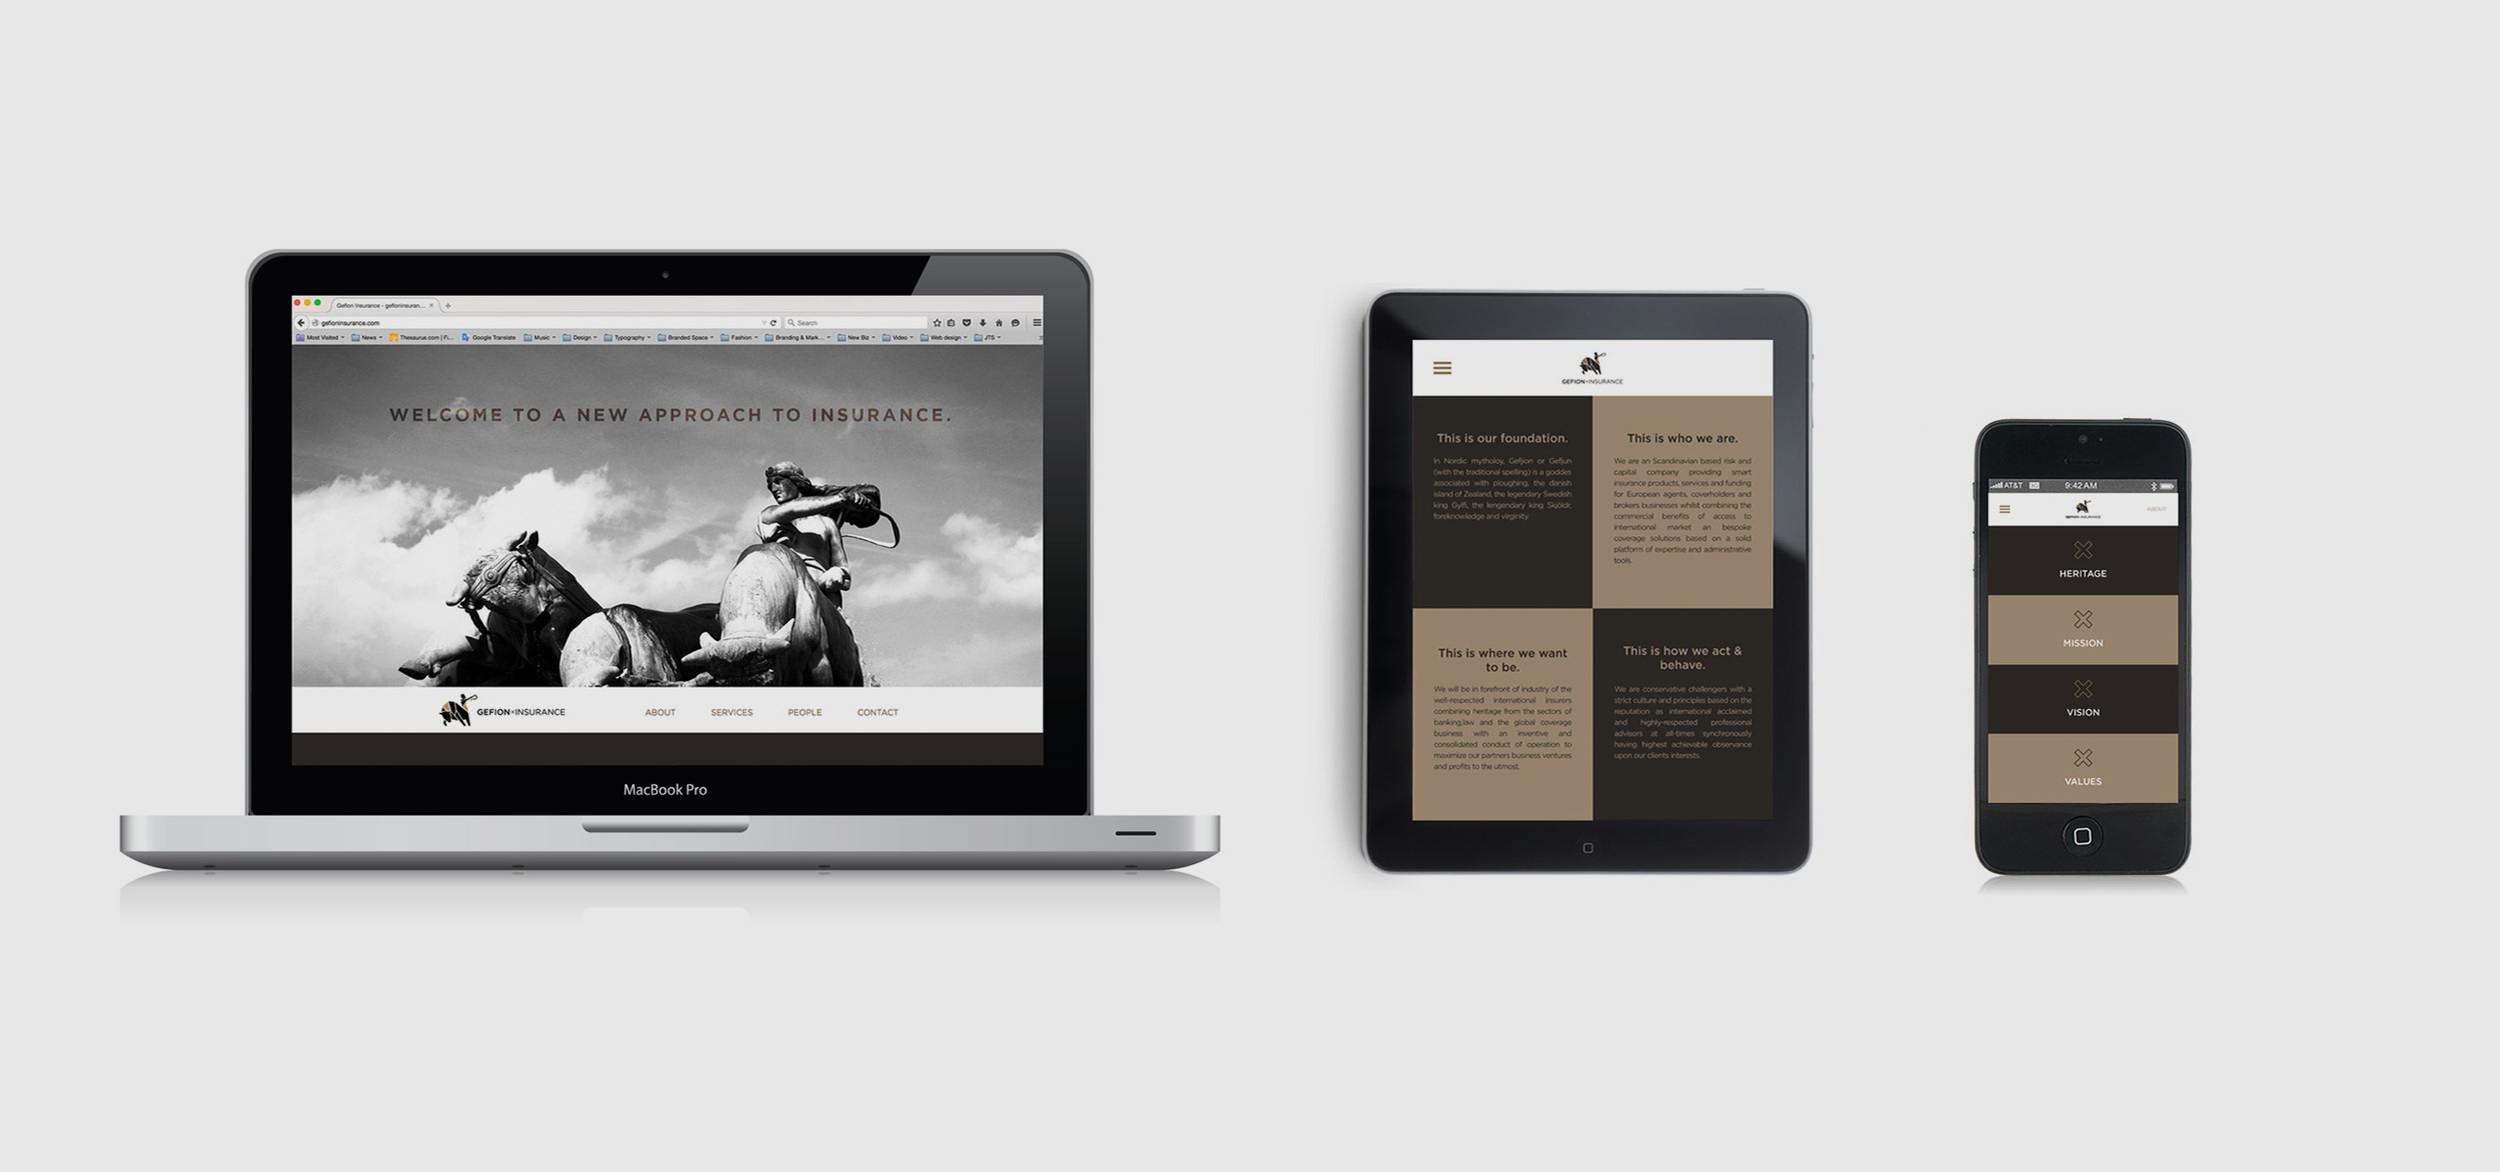 Website design and branding of Gefion Insurance's online presence